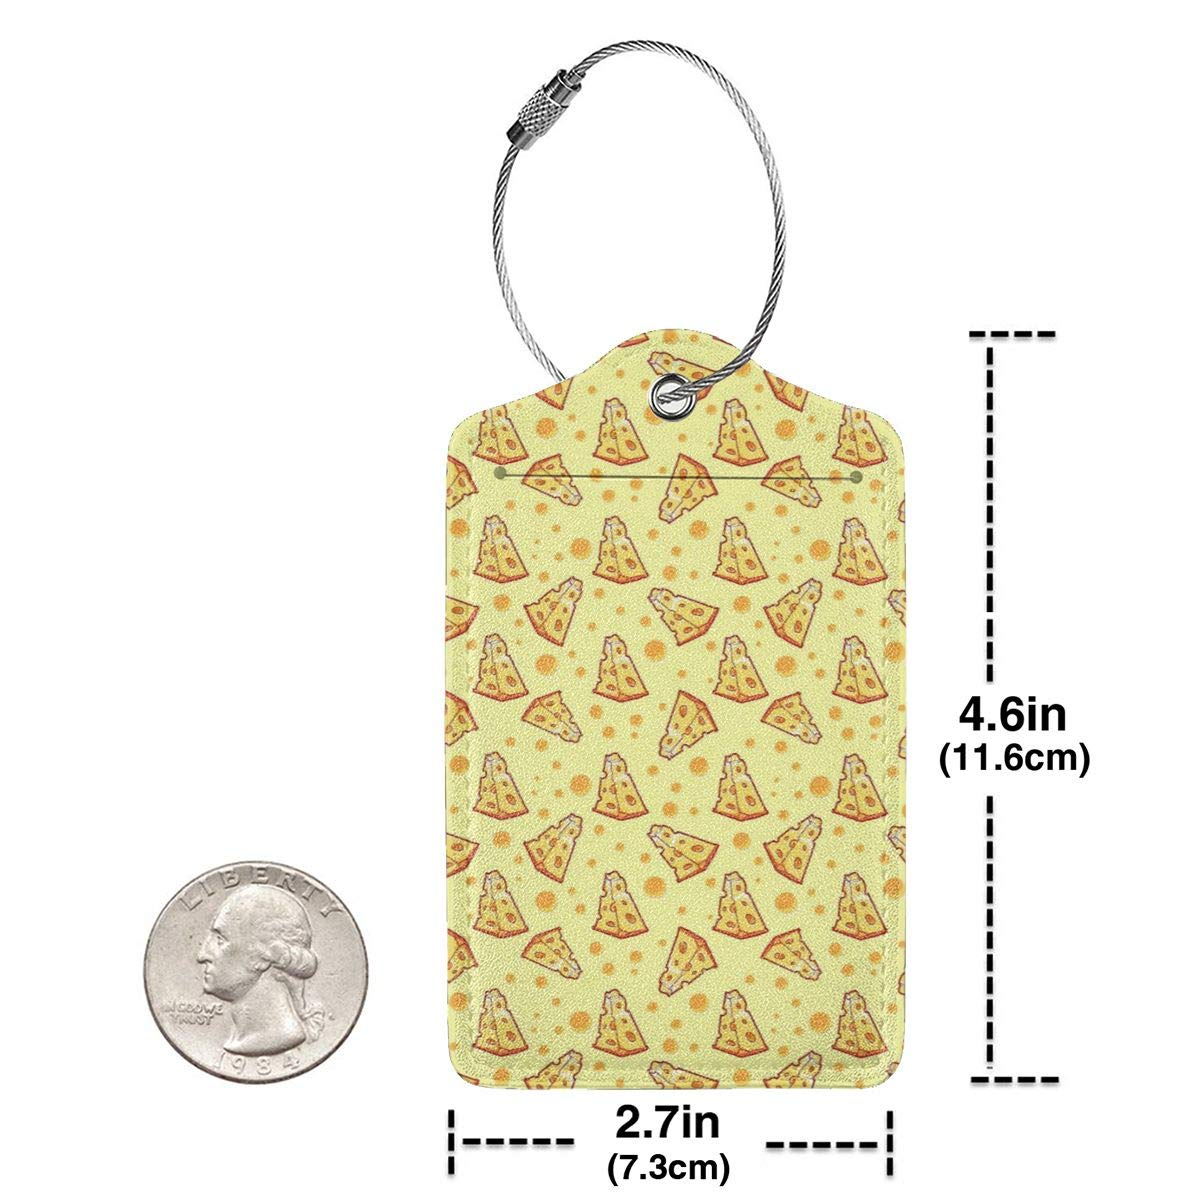 Pizza Cheese Luggage Tag Label Travel Bag Label With Privacy Cover Luggage Tag Leather Personalized Suitcase Tag Travel Accessories